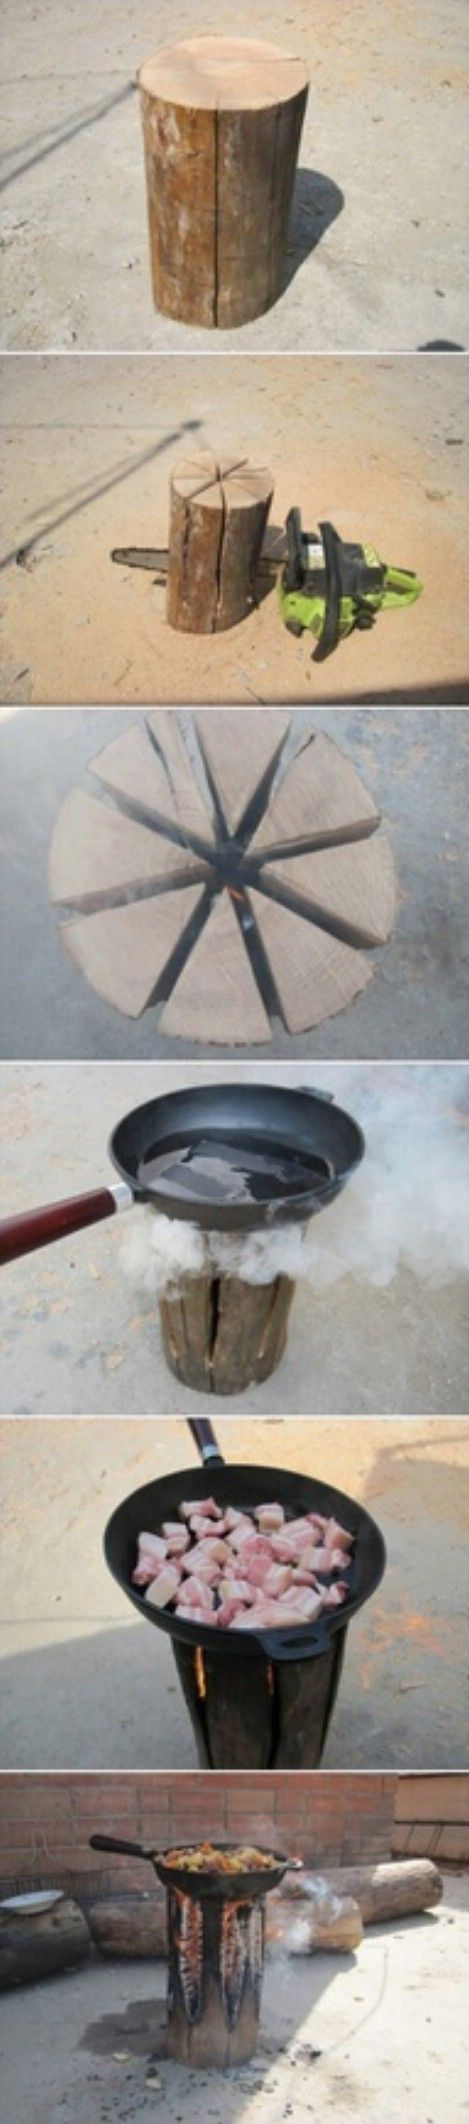 Photo of Top 33 Most Creative Camping DIY Projects and Clever Ideas